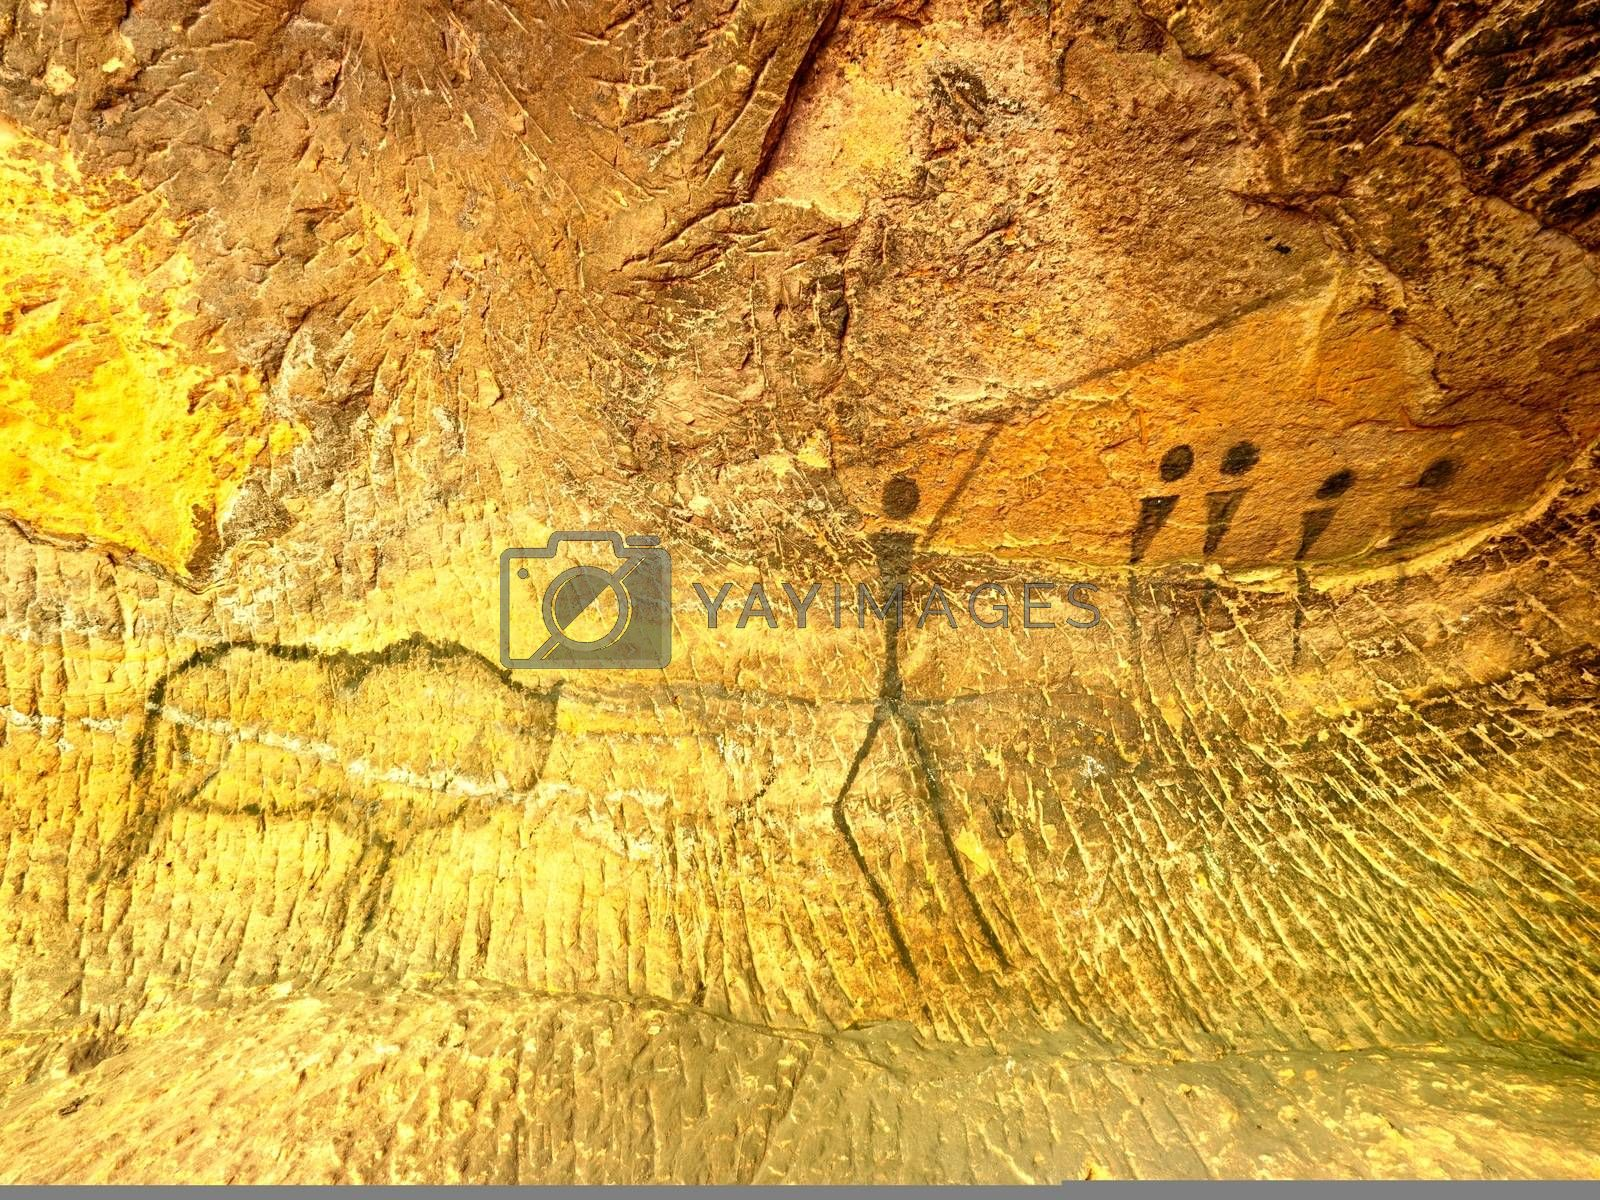 Buffalo hunting. Paint of human hunting on sandstone wall, prehistoric picture. Black carbon abstract children art in sandstone cave. Spotlight shines on caveman painting in cave